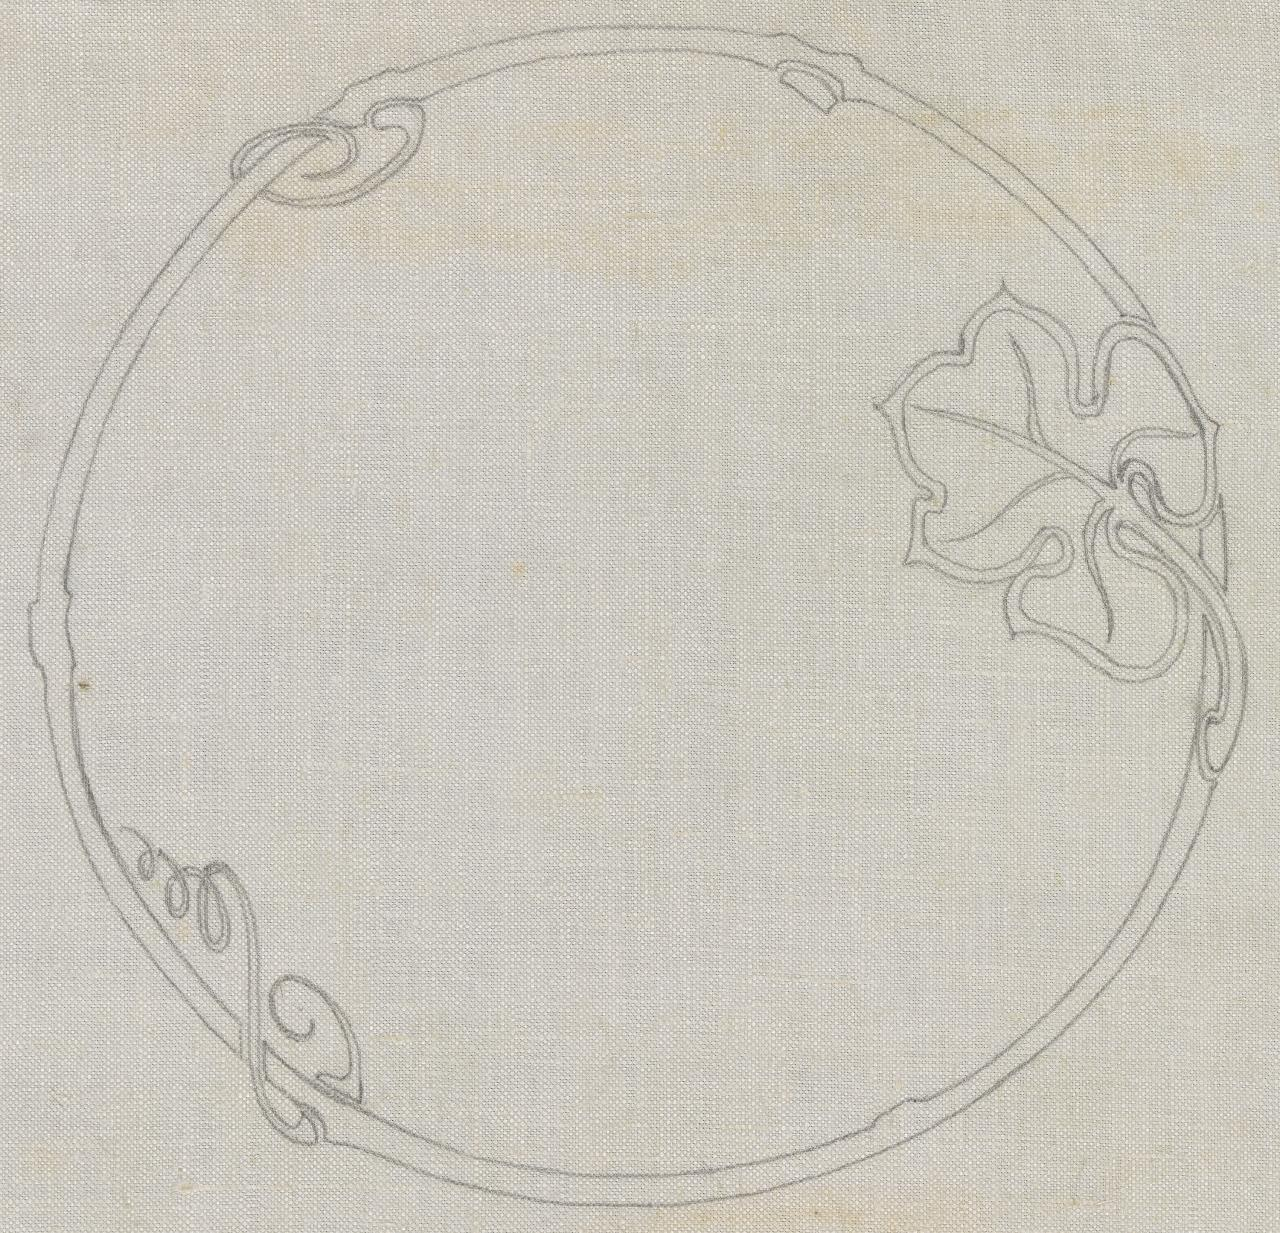 Circular motif with vine leaves (no grapes)